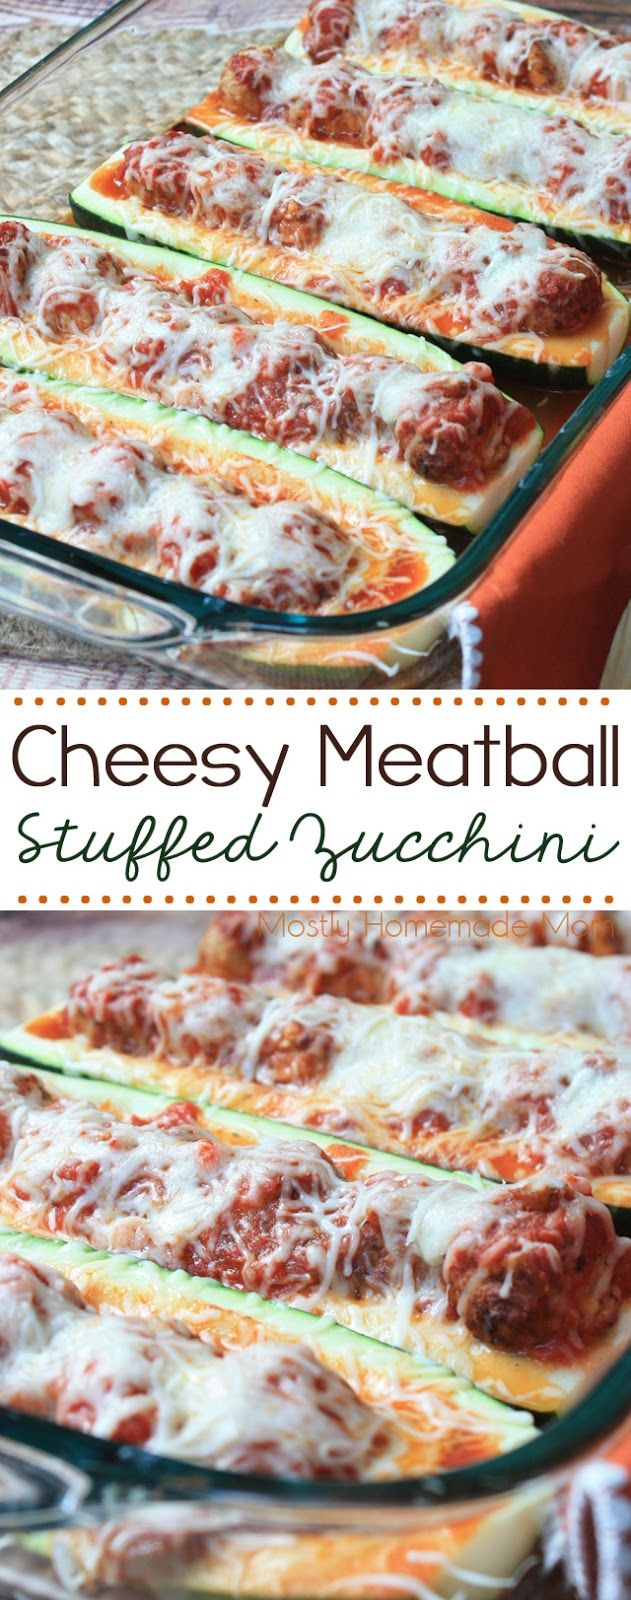 Cheesy Meatball Stuffed Zucchini - super simple and easy for a weeknight meal! Zucchini boats filled with tomato sauce, meatballs, and mozzarella cheese - your family will go nuts for this recipe! #ad